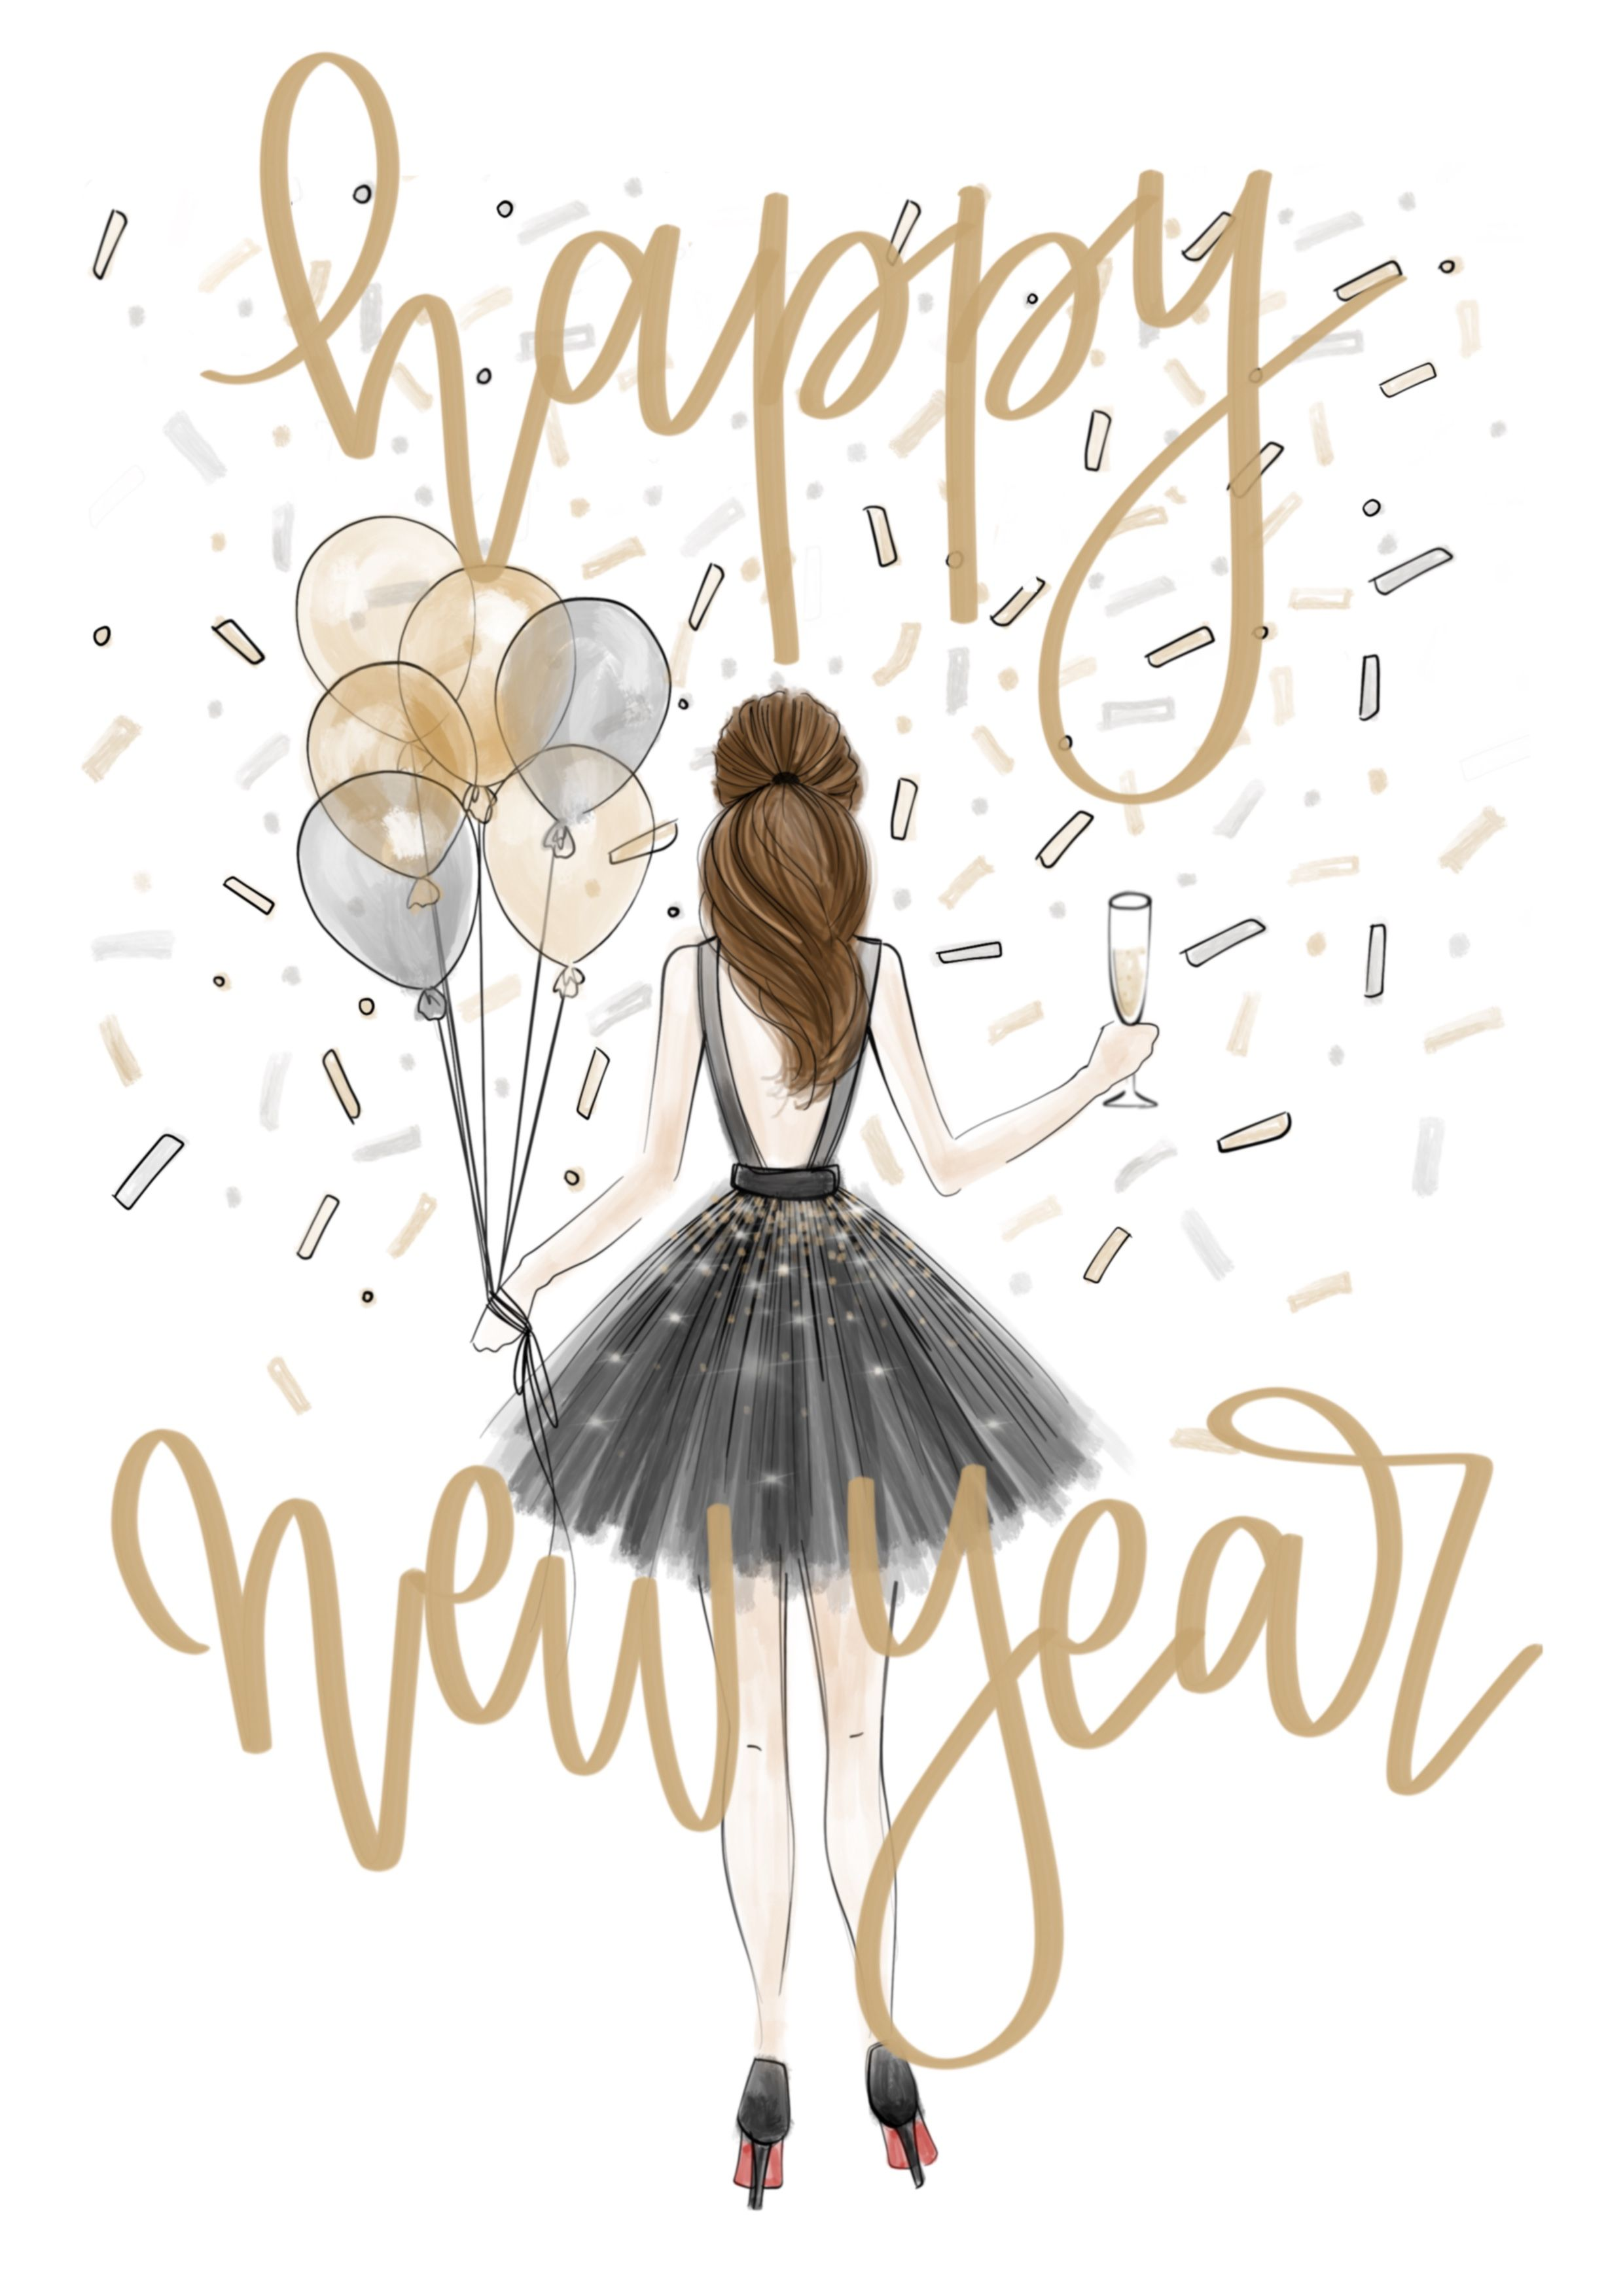 Happy New Year Celebrate Iphone Wallpaper Shop The Collection At Redbubble Now Https Www Redbub Happy New Year Wallpaper Happy New Year Images Shop Wallpaper